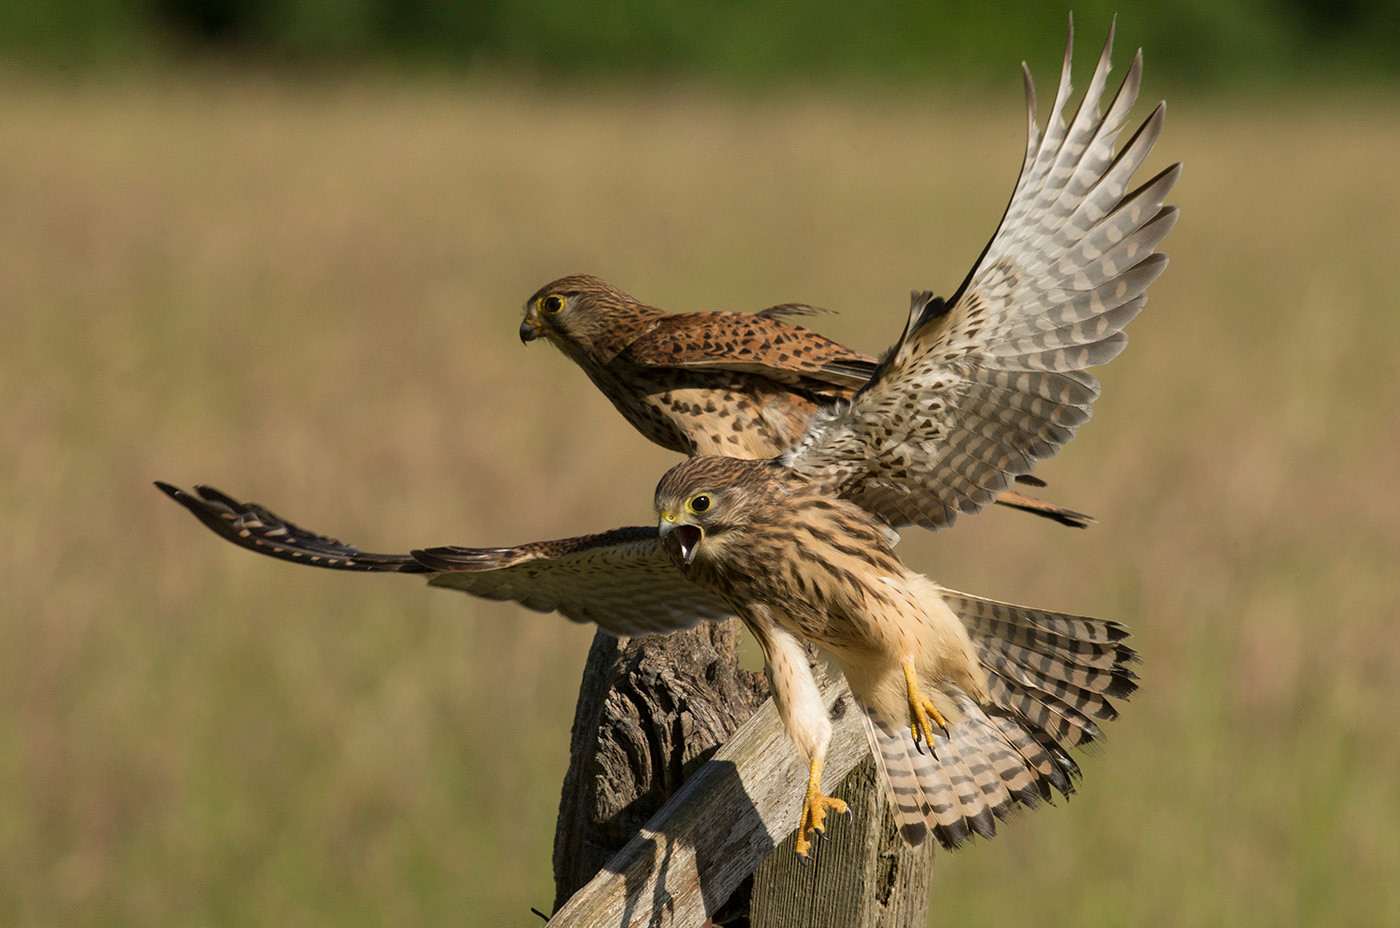 17 KESTREL AND JUVENILE by John Hunt